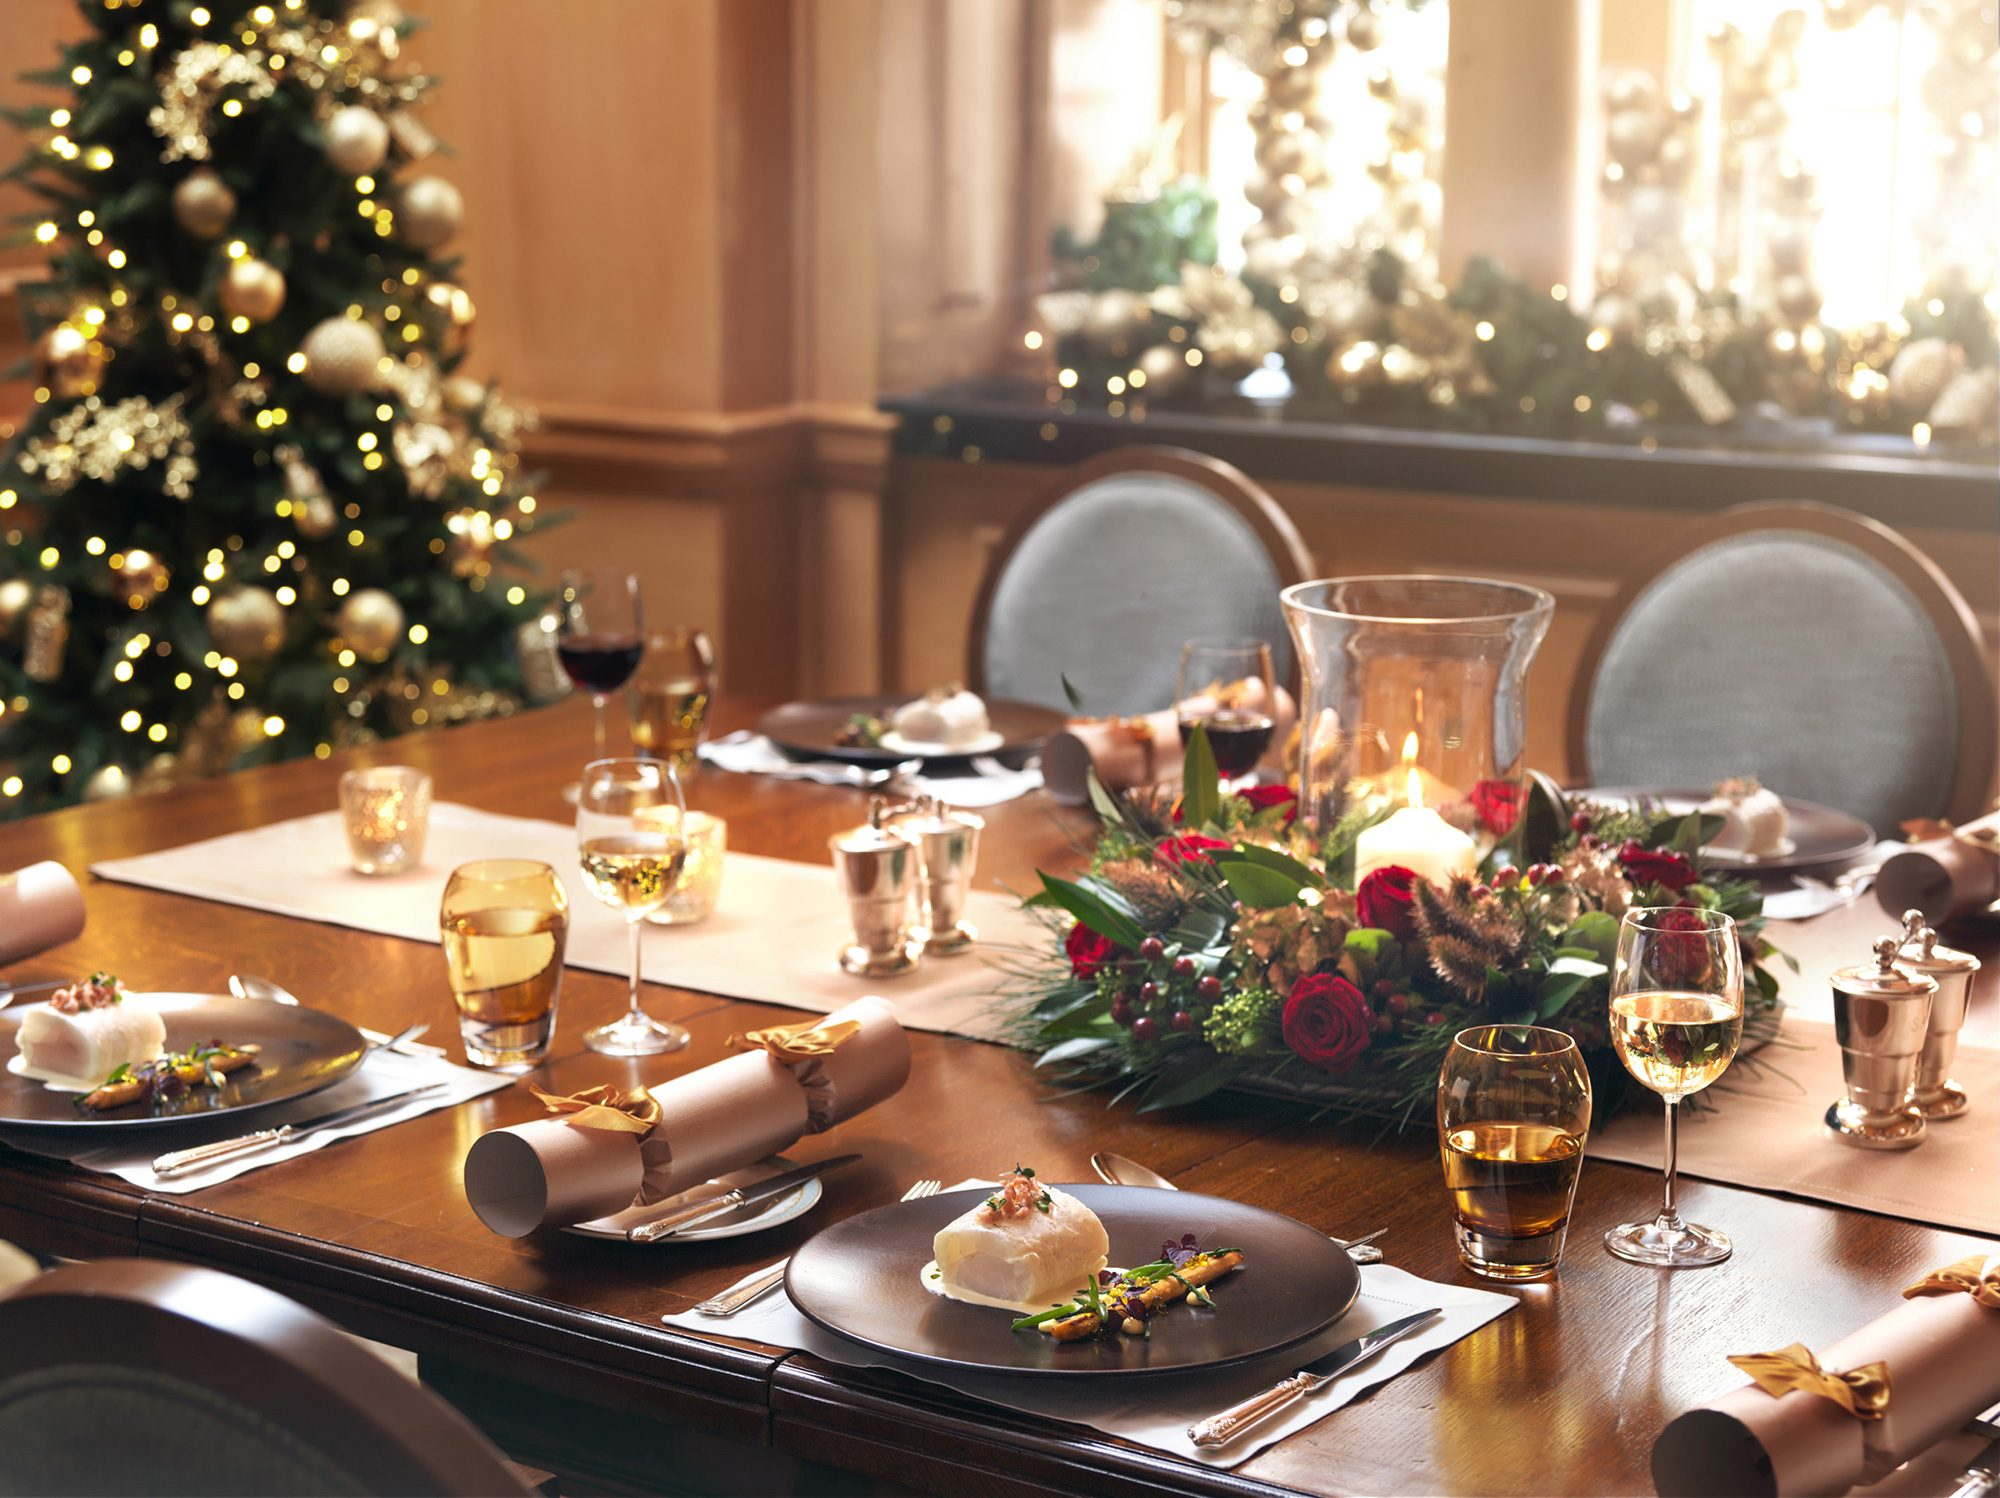 Festive table setting with Christmas tree